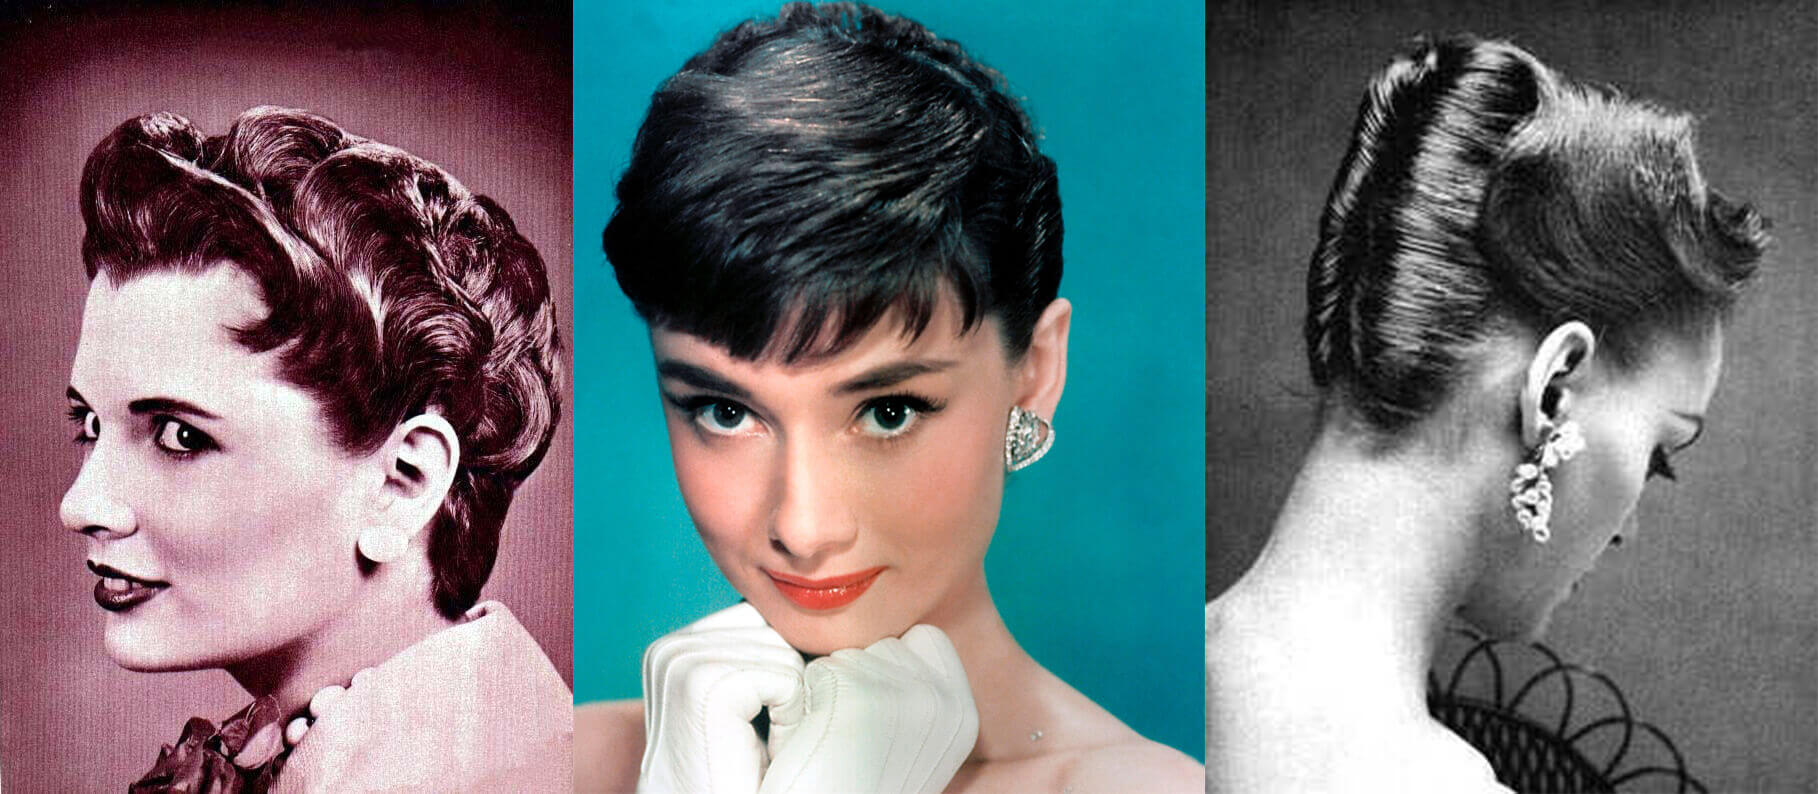 10 Decades Of Hairstyles During The 20th Century 2020